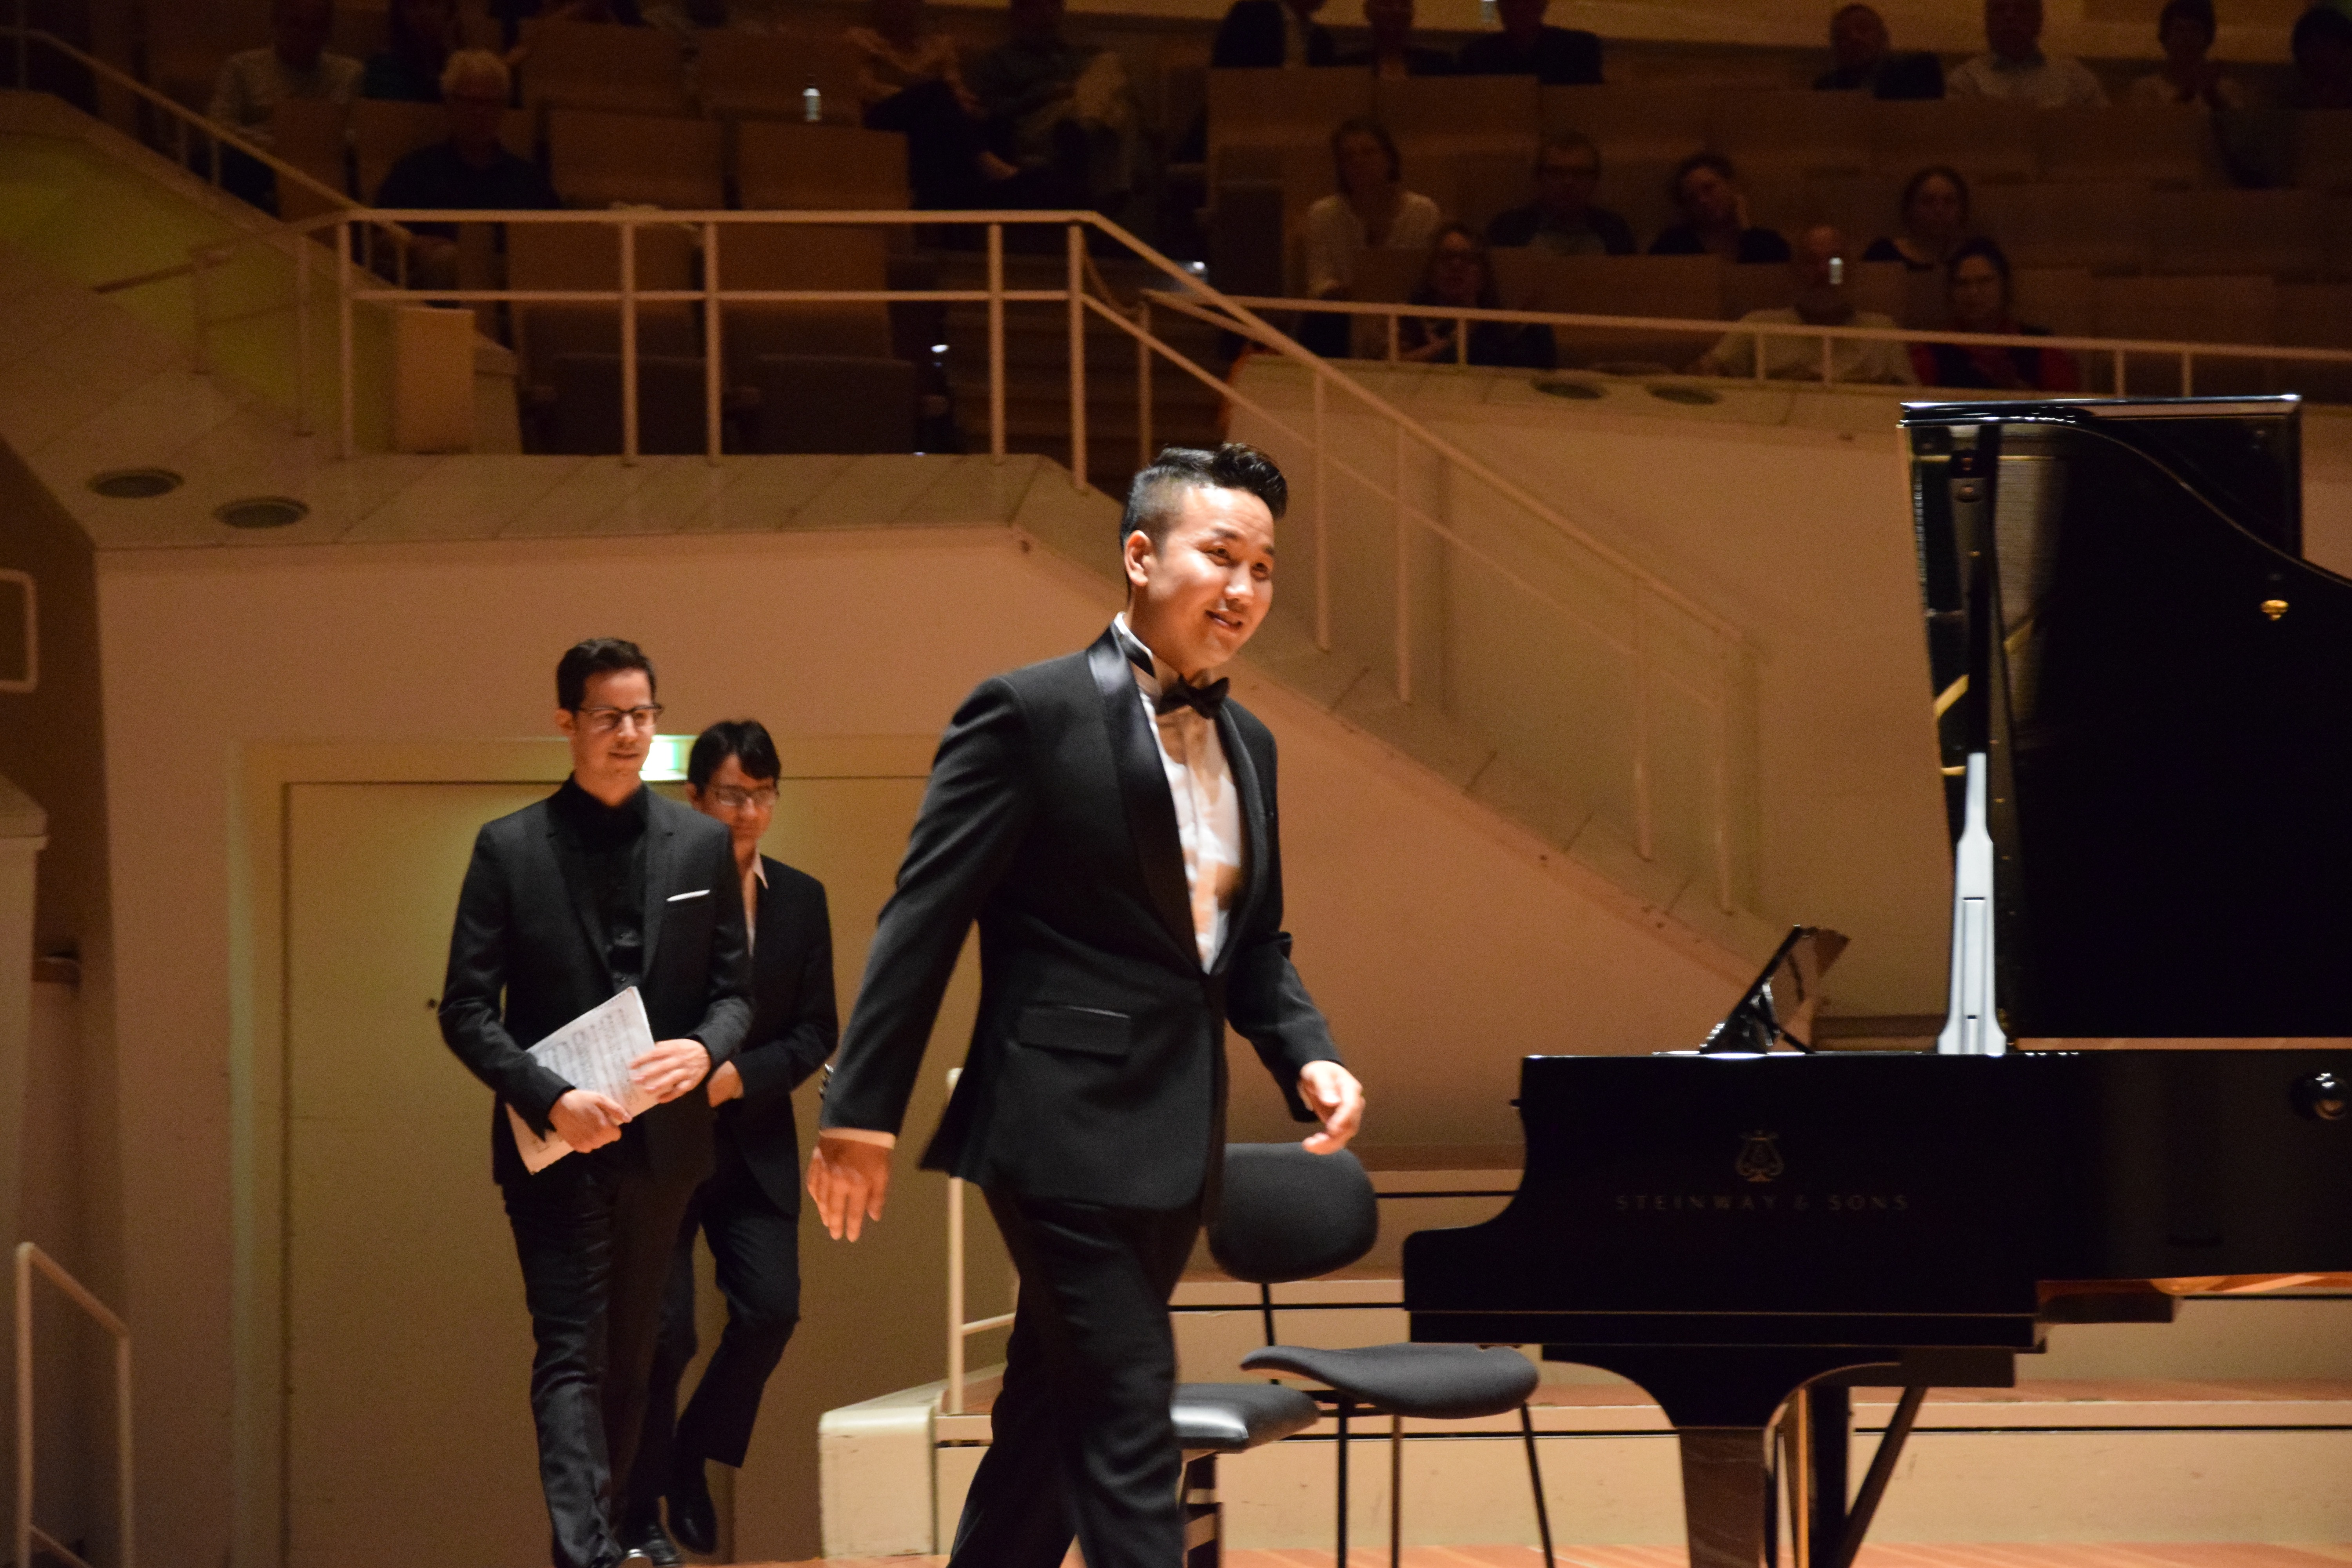 berliner music competition 39